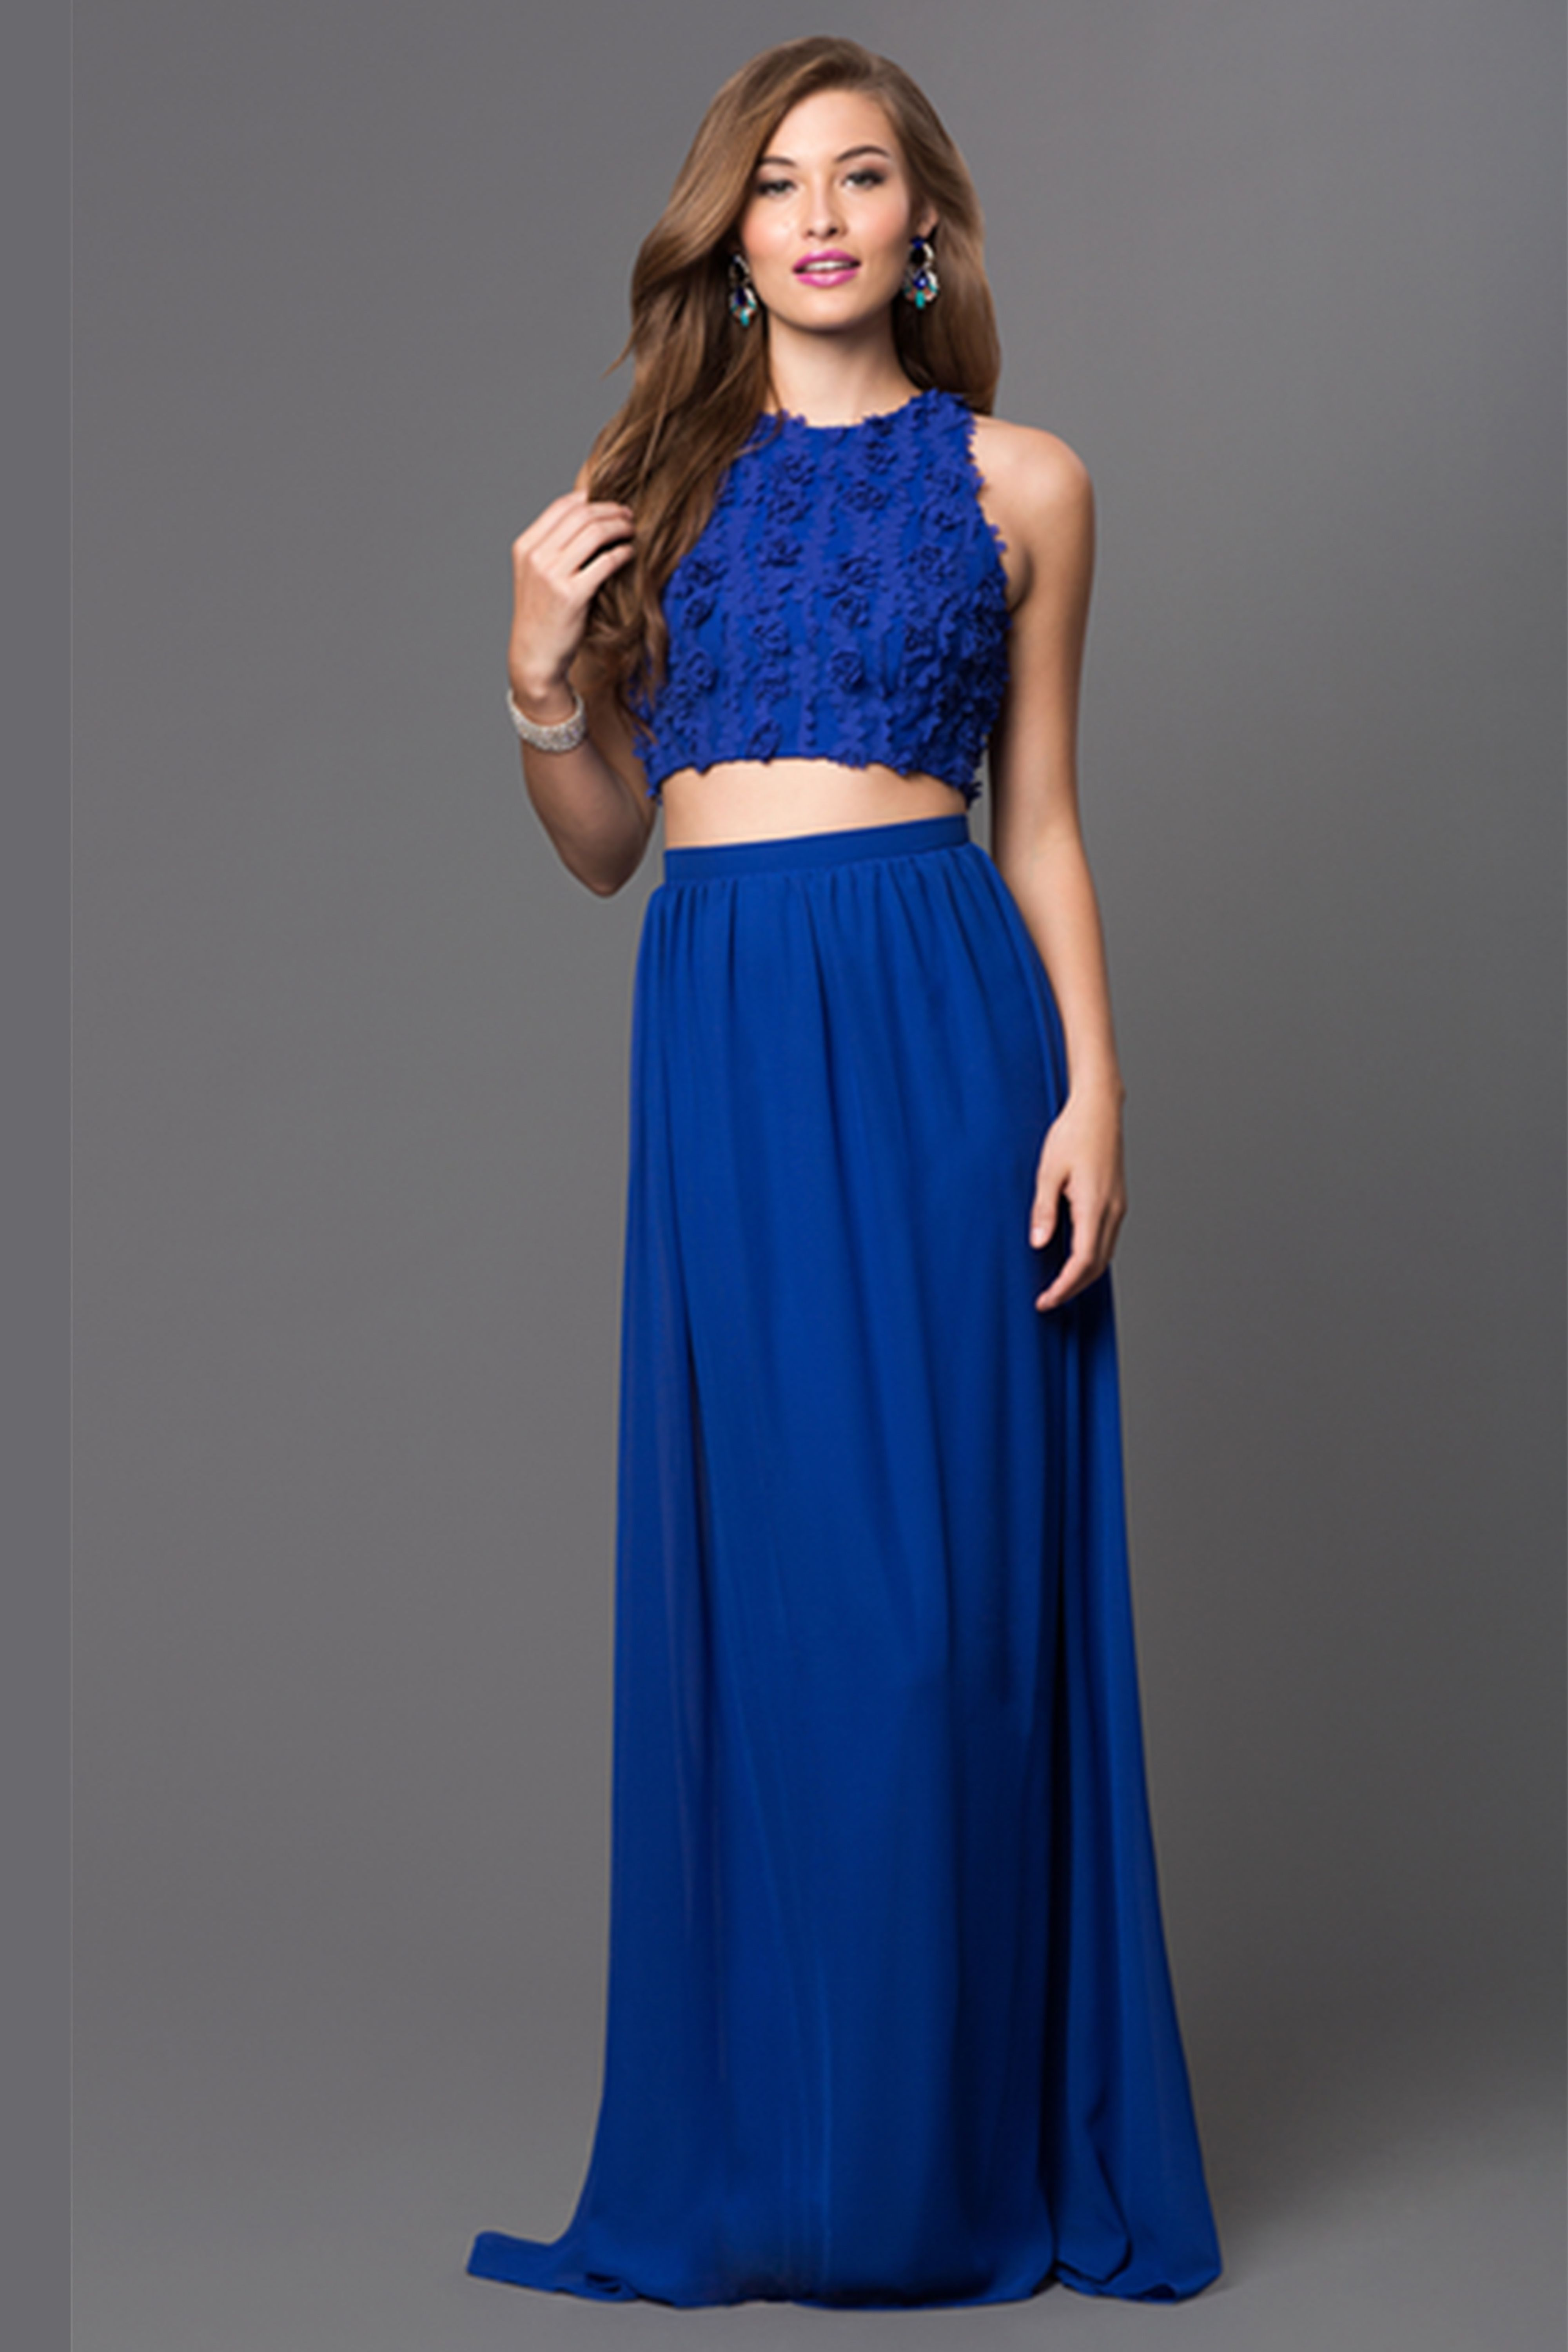 Electric Blue Prom Poofy Dresses